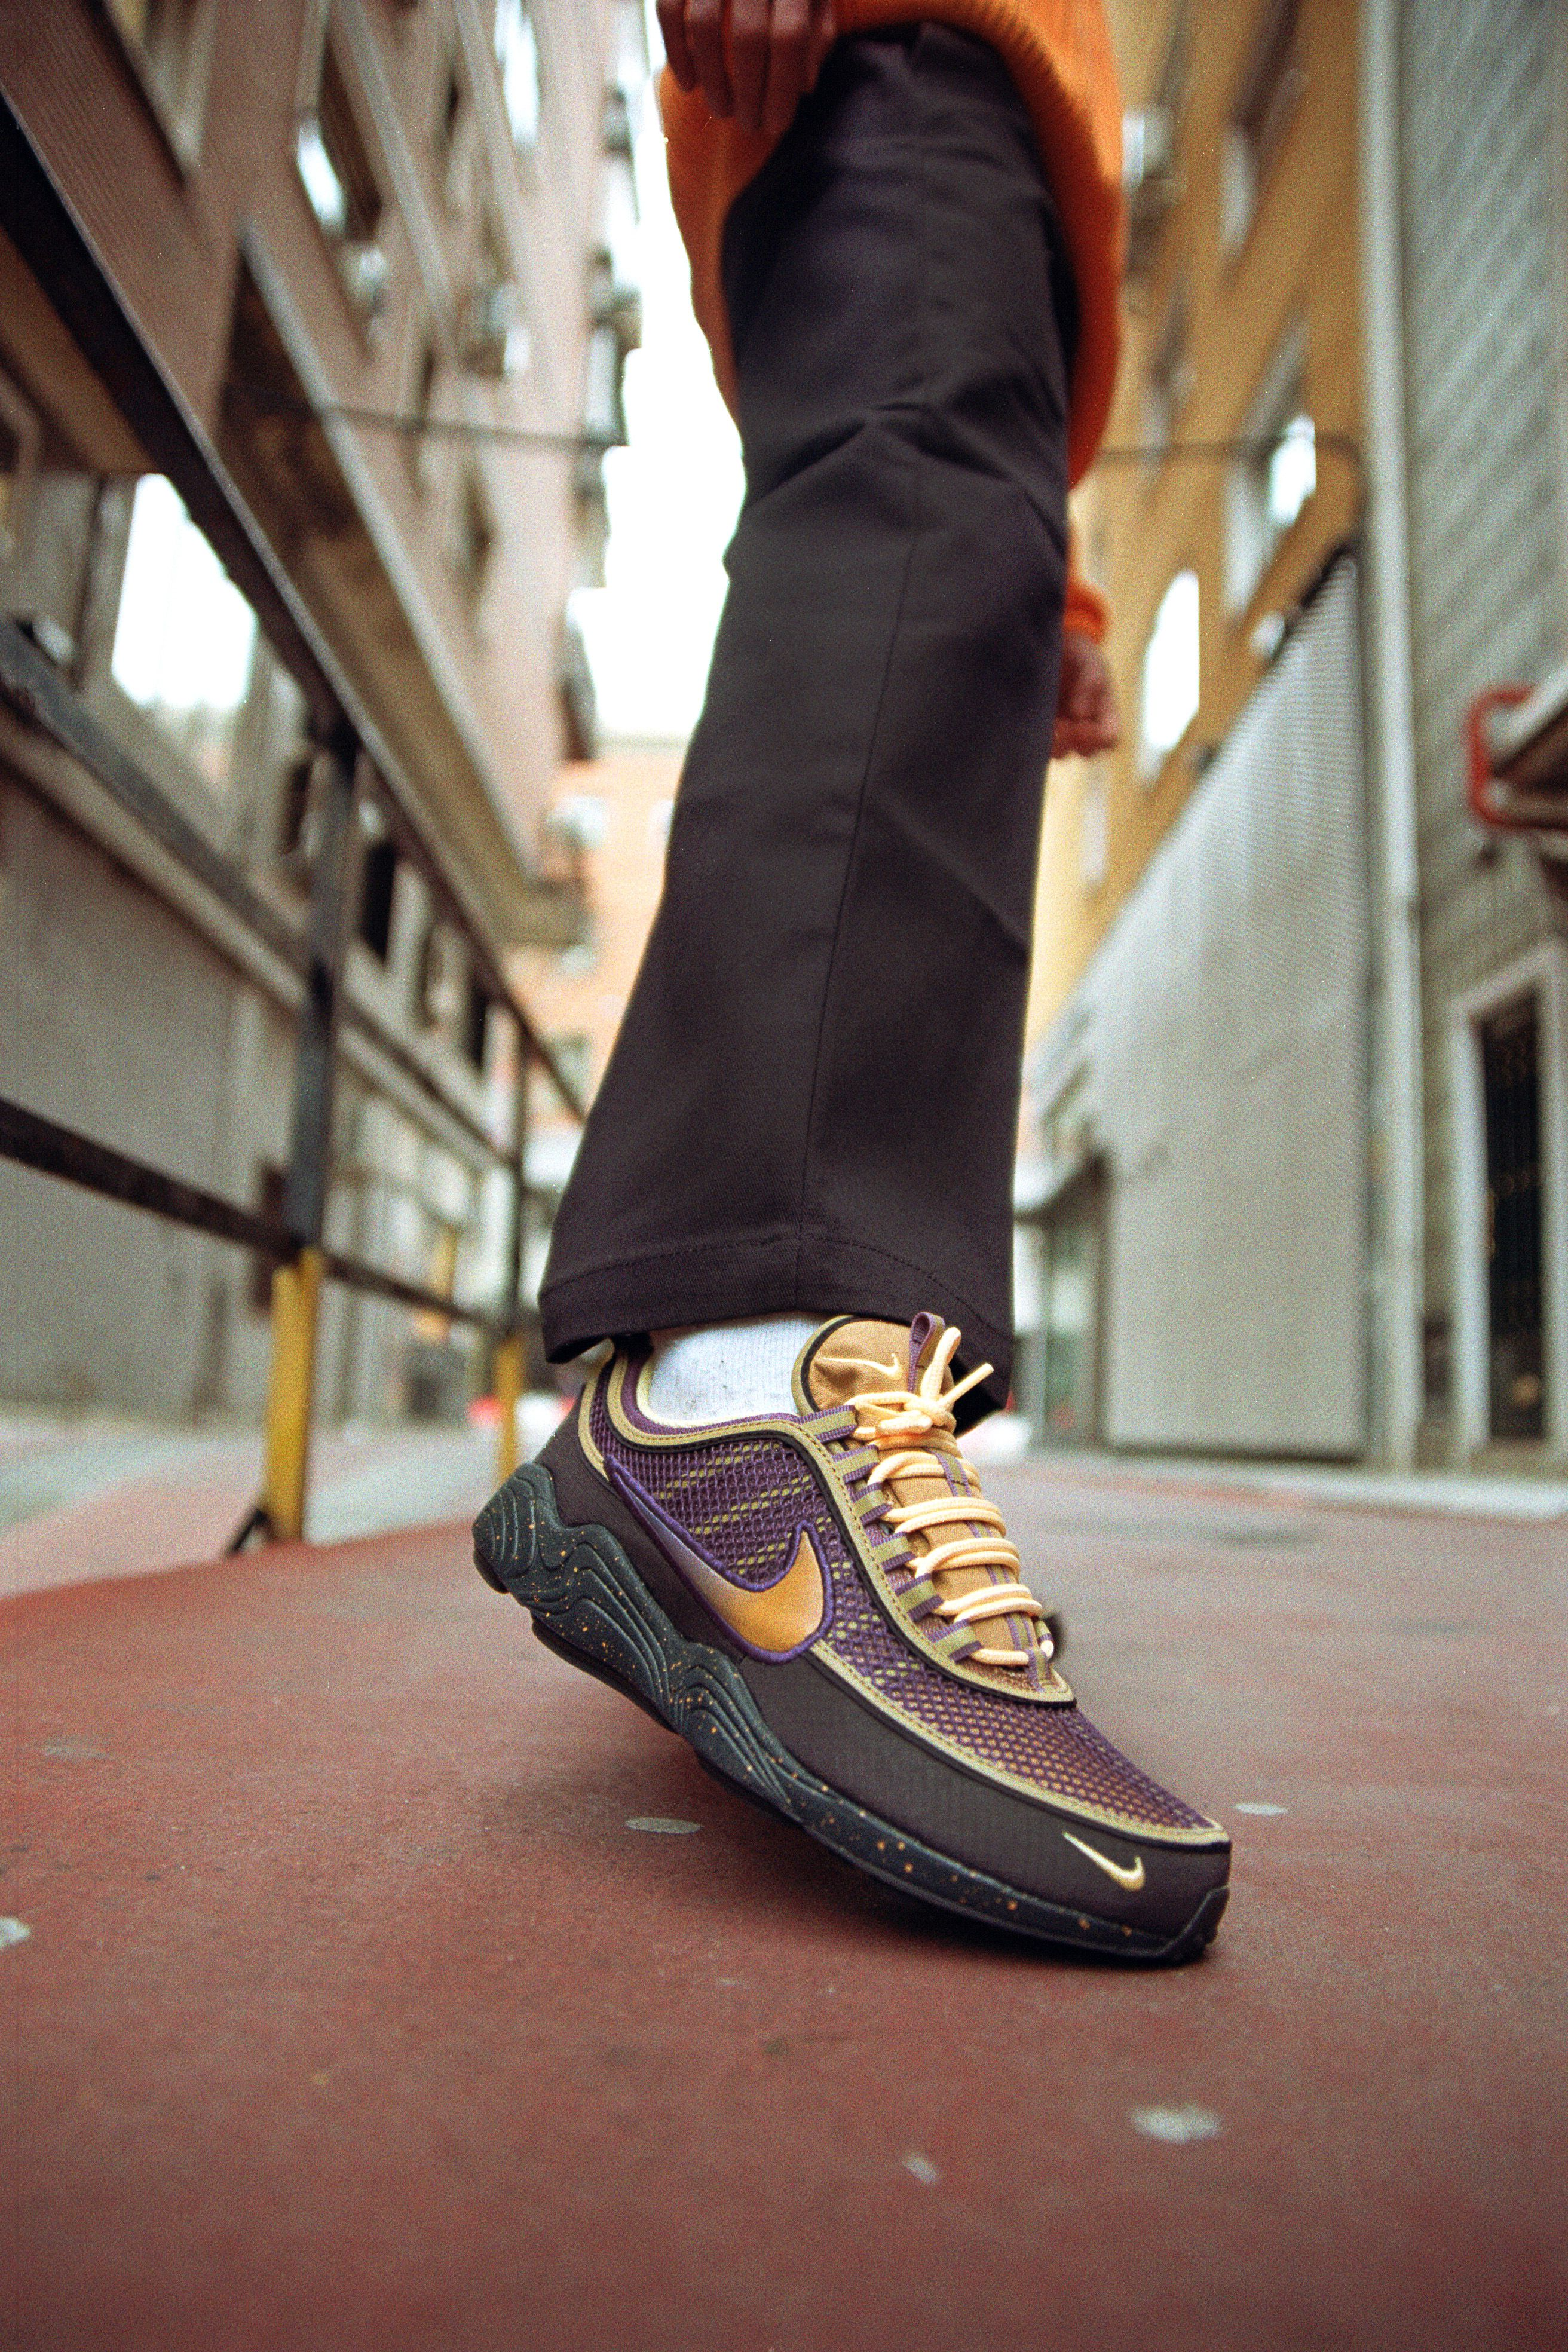 detailed look 31f69 863a4 Nike Air Zoom Spiridon     stormshop  nike  airzoomspiridon  madrid   streetwear  hypebeast  photography  analogic  35mm  analogphotography   portrait